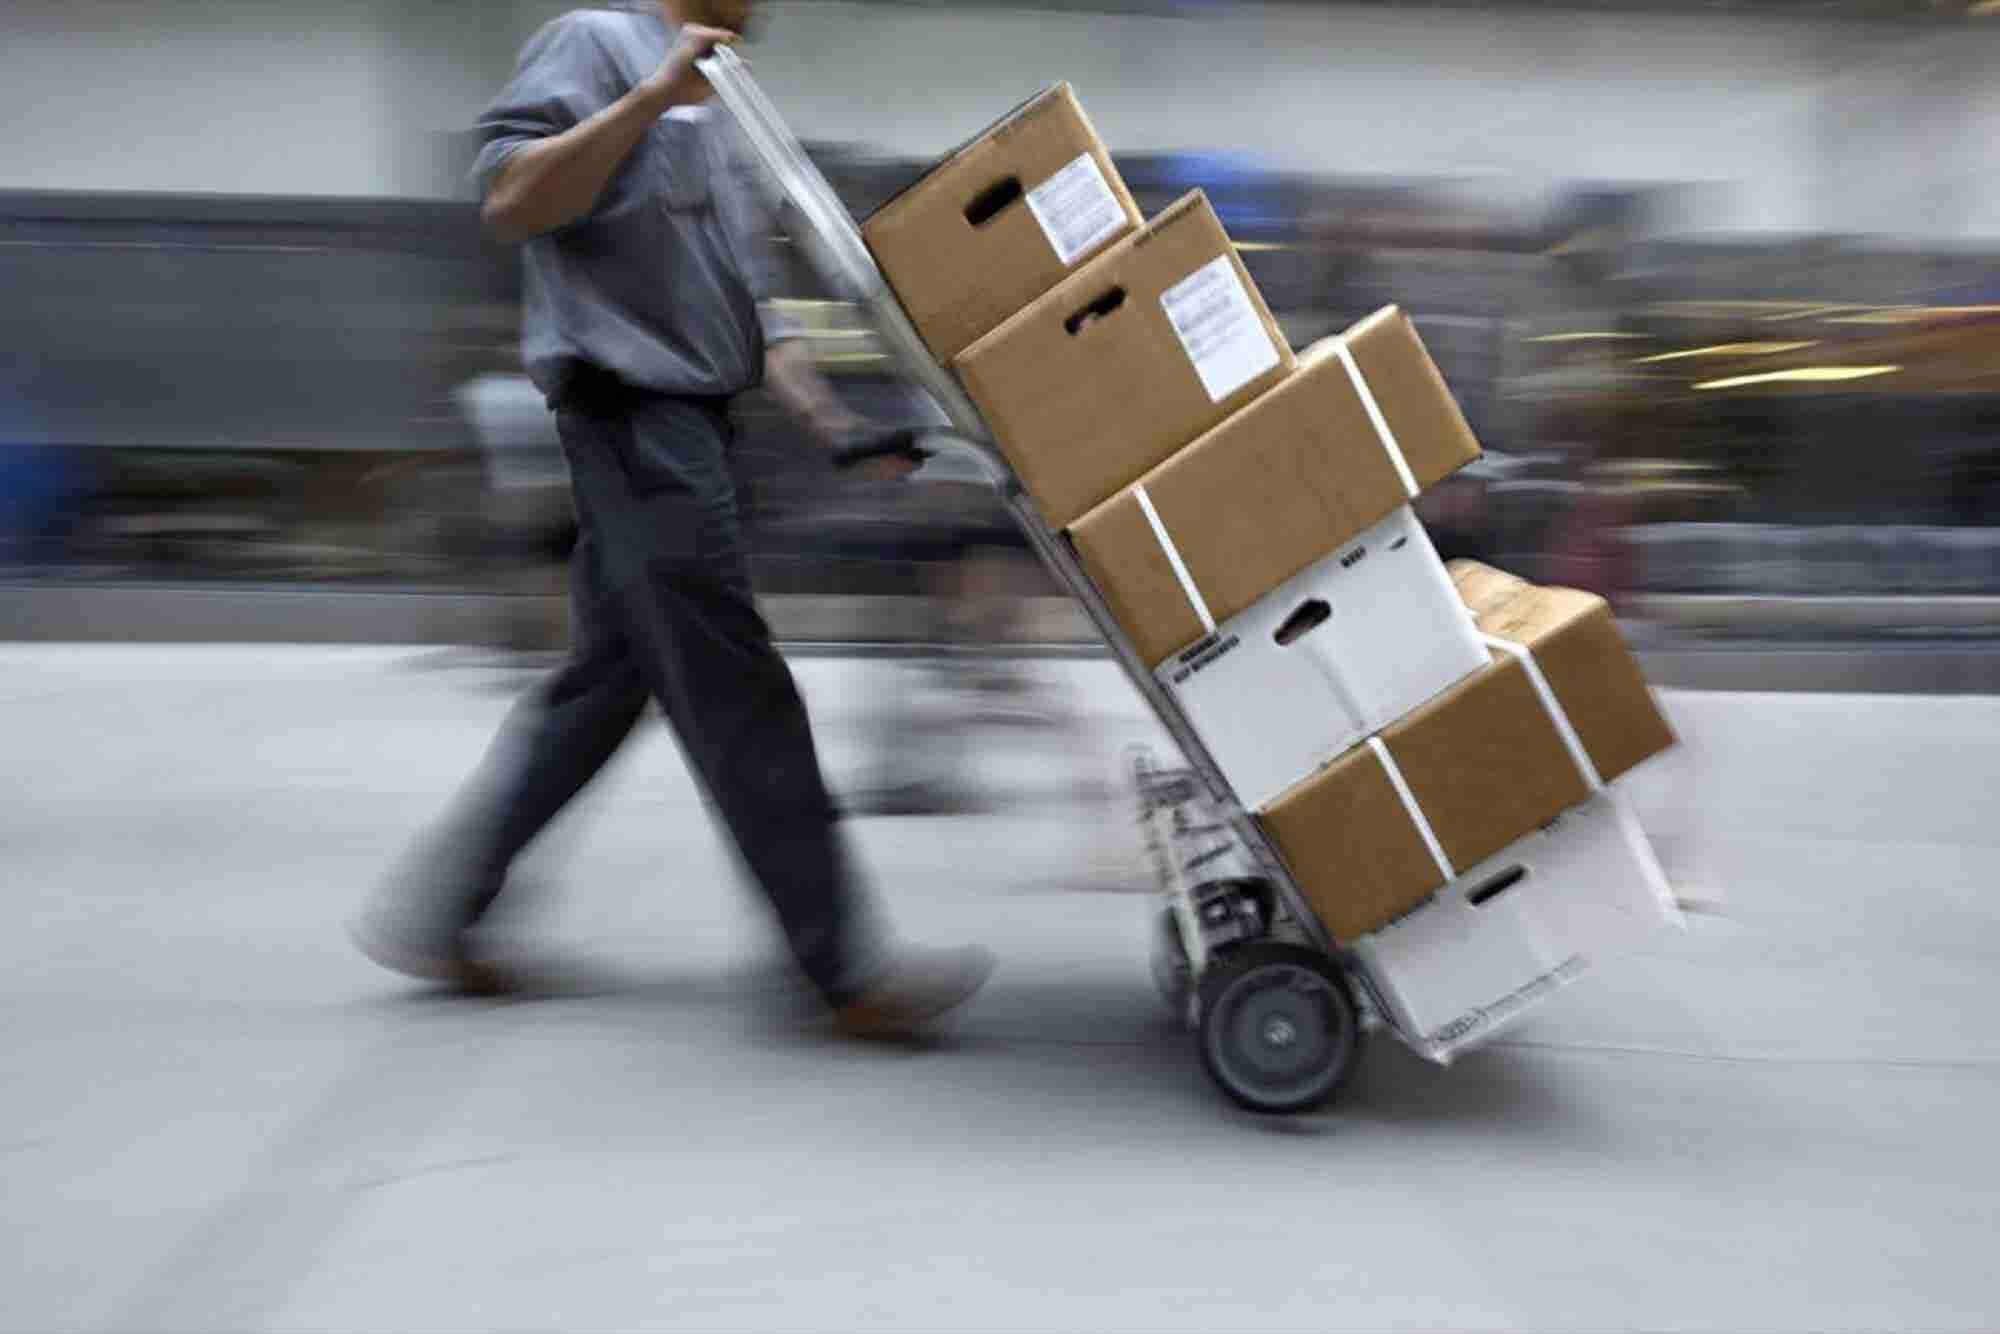 Implement These 5 Strategies to Avoid Holiday Shipping Snafus